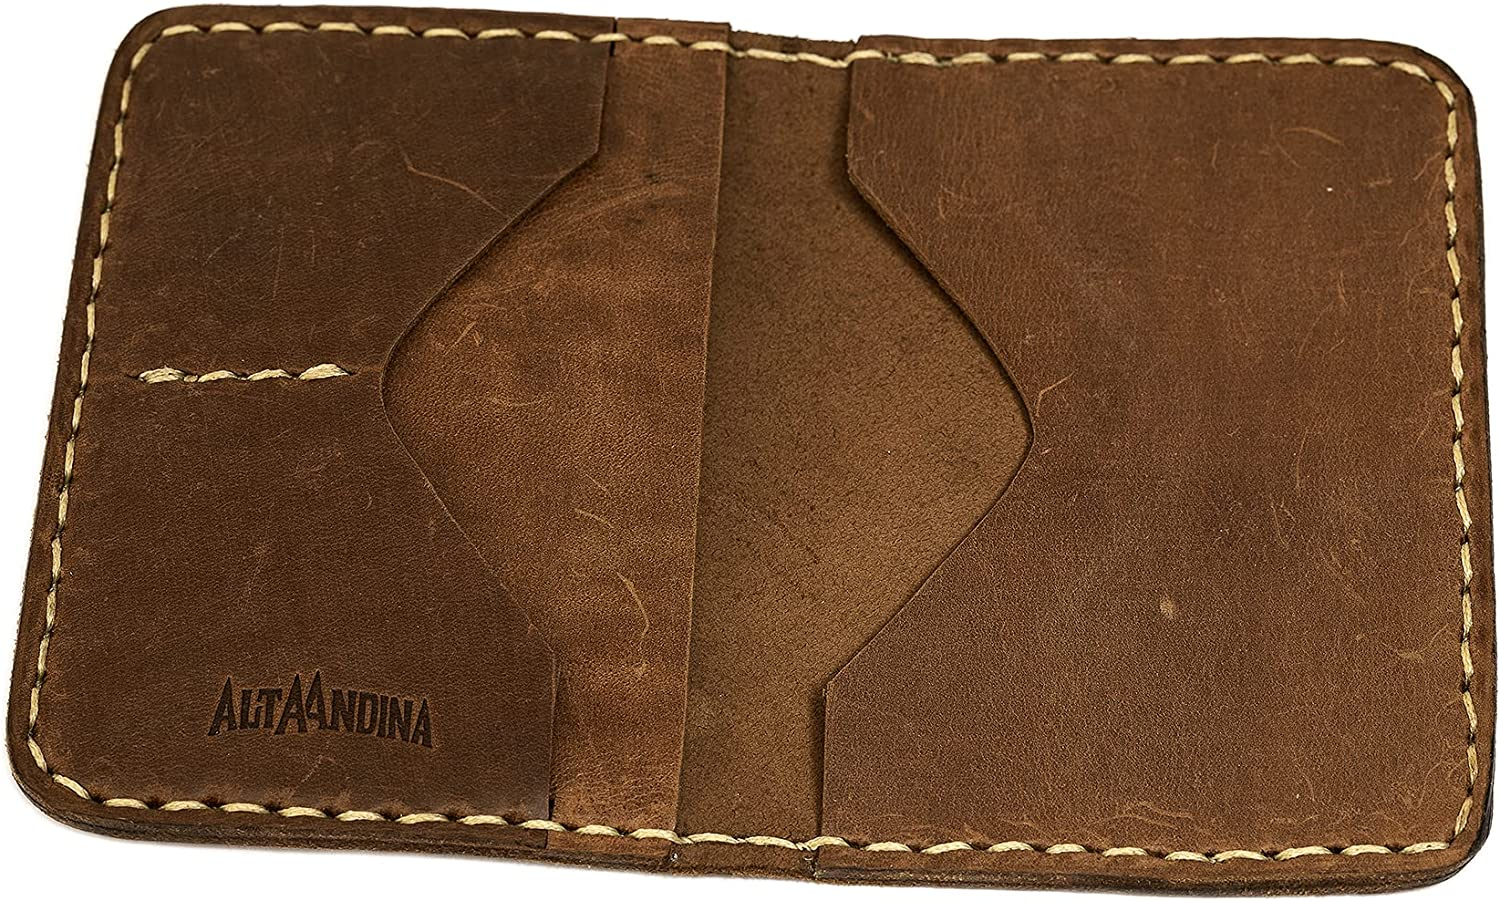 Alta Kansas City Mall Andina Leather Passport Travel Tanned Wallet Le Max 48% OFF Vegetable